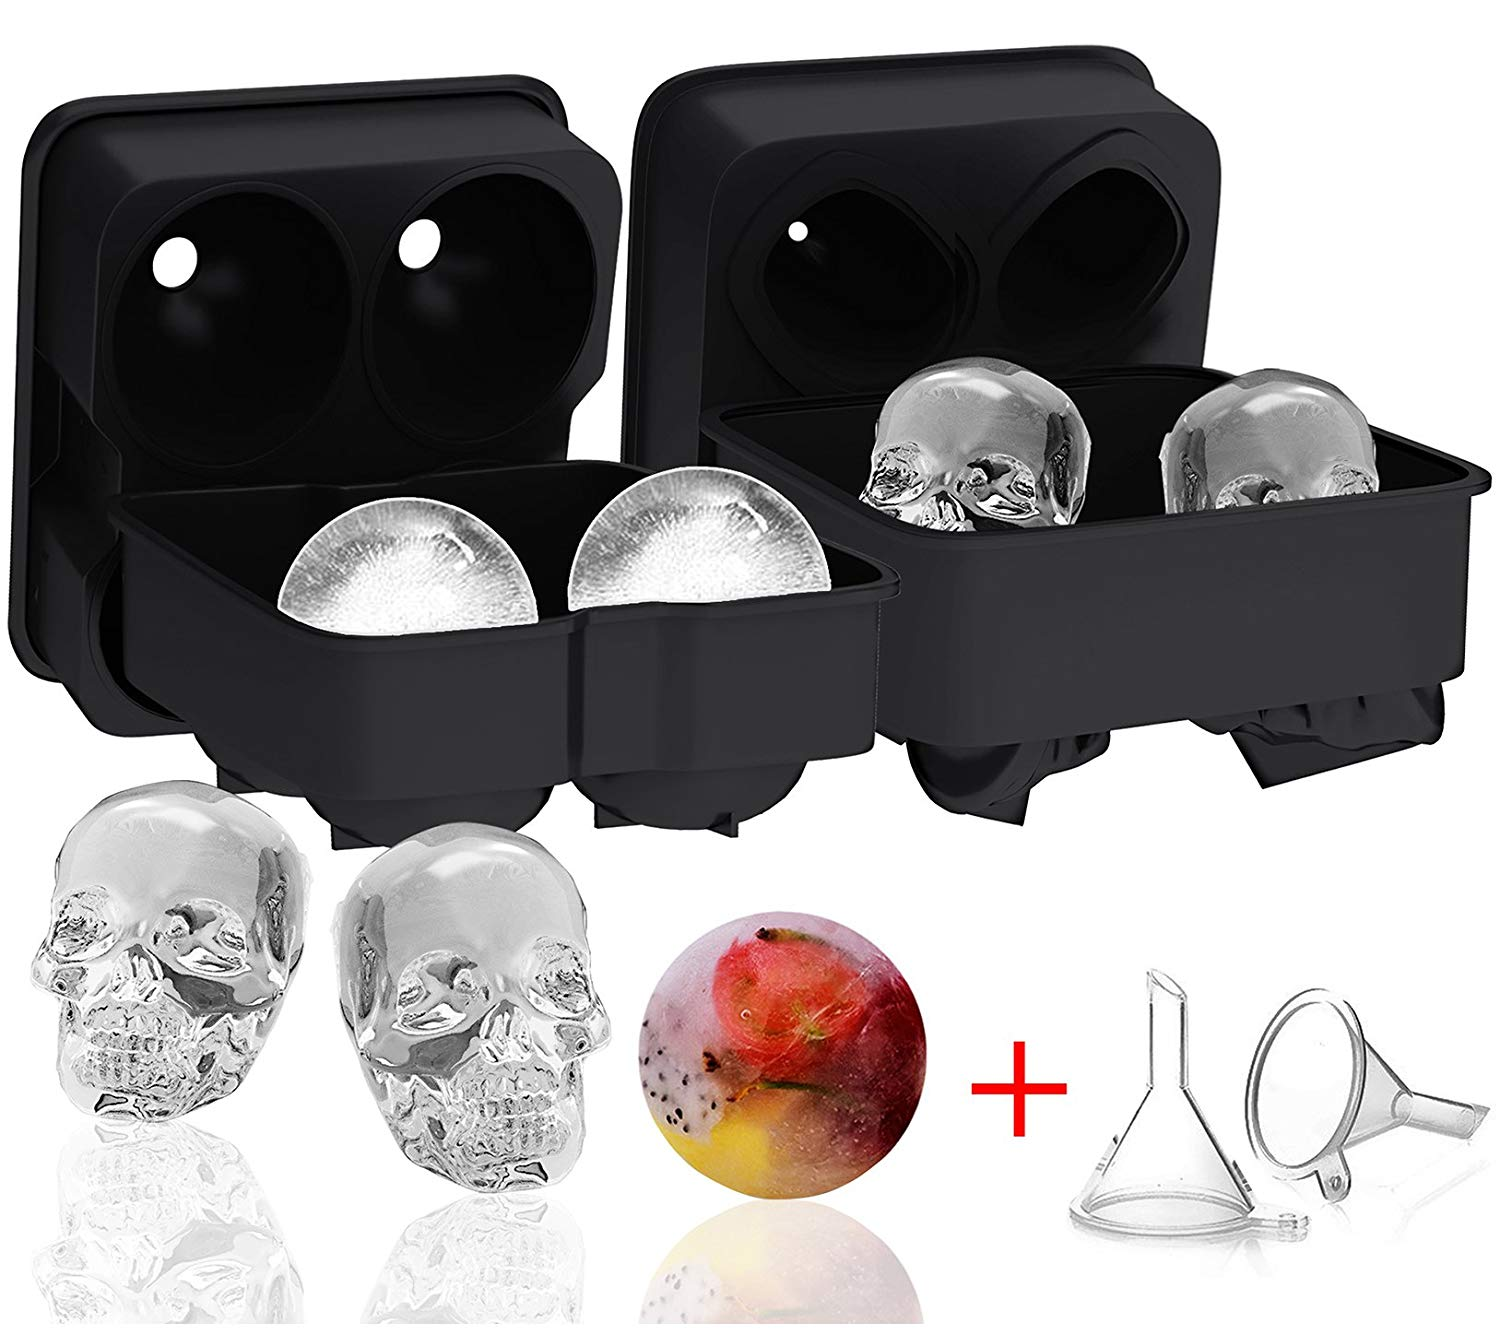 Ozera 2 Pack 3D Skull Ice Cube Mold & Silicone Ice Ball Maker, Novelty Skull Ice Trays, Round Ice Cube Maker with 2 Plastic Funnel for Whiskey Wine, Cocktails and Beverages and More